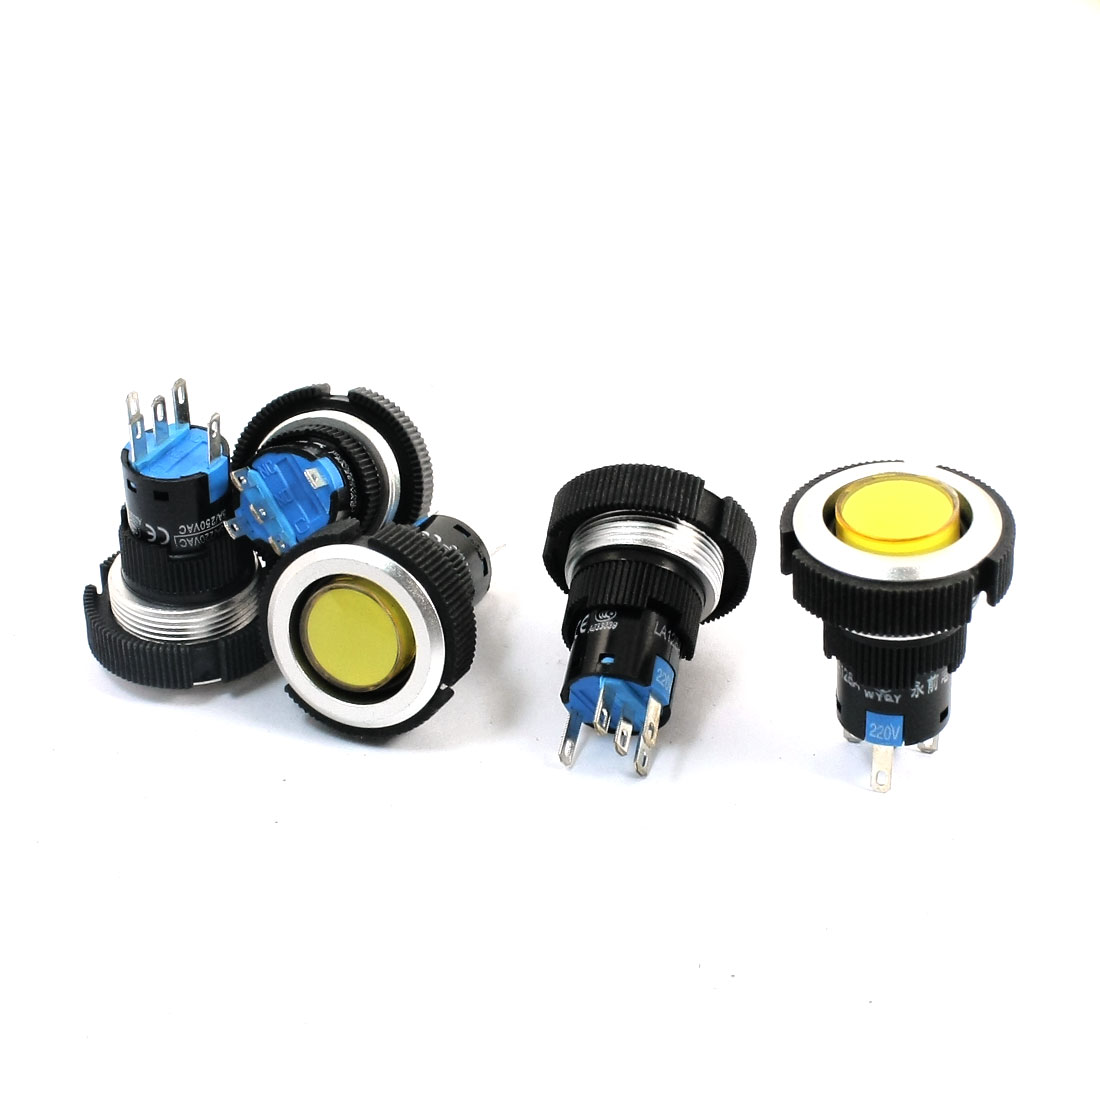 5Pcs 220V 22mm Thread Panel Mount SPDT 5Pin 1NO 1NC Soldering Locking Yellow Lamp Push Button Switch